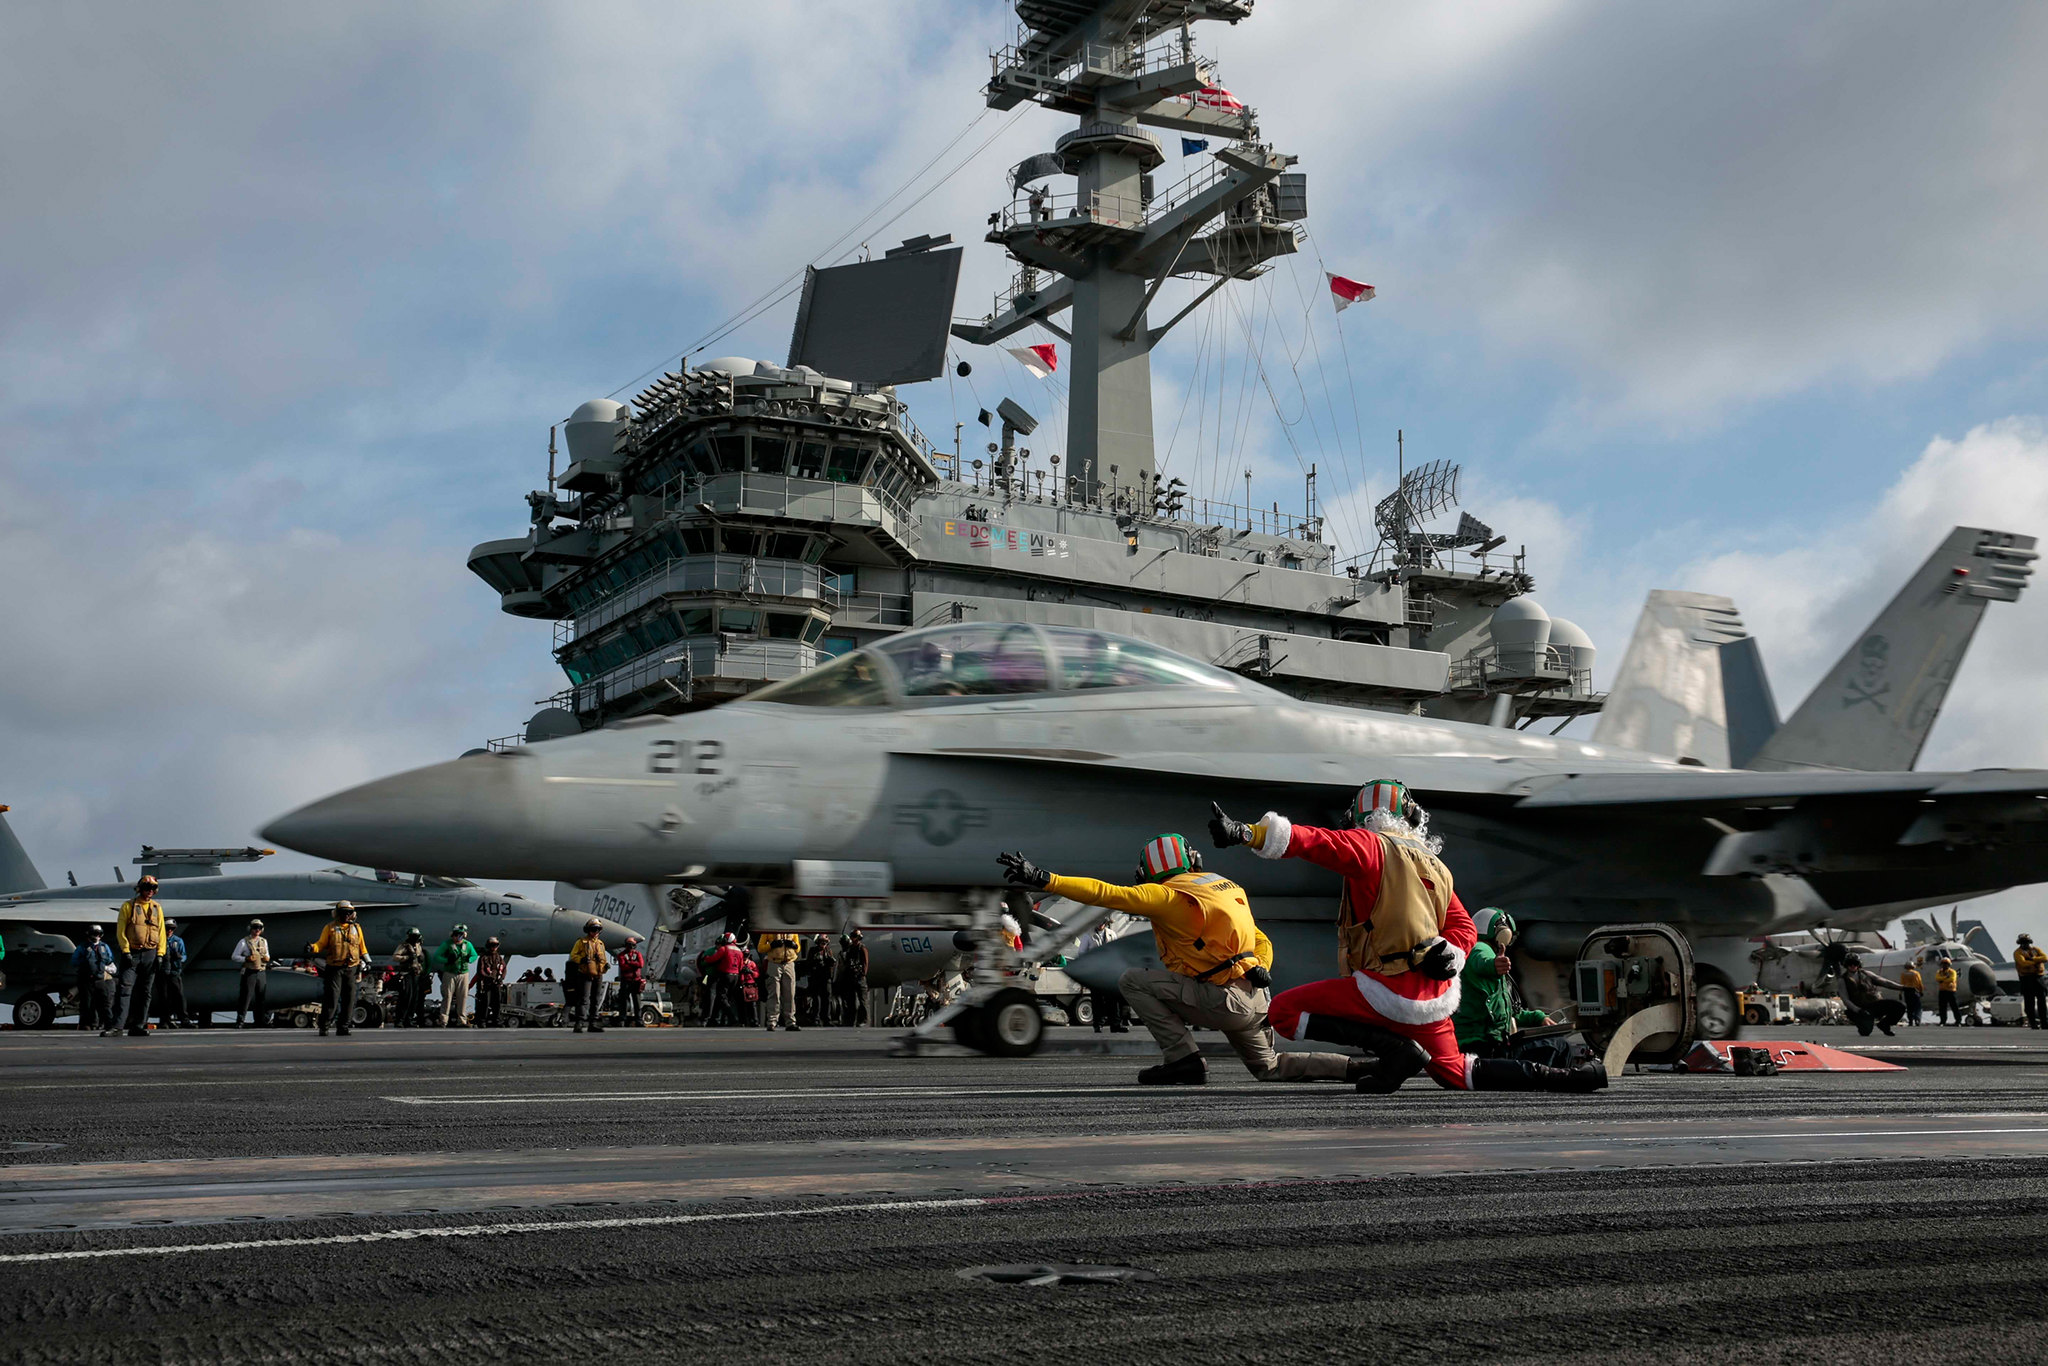 A sailor dressed as Santa Claus directs the launch of an F/A-18F Super Hornet on Dec. 24, 2019, on the flight deck of the aircraft carrier USS Abraham Lincoln (CVN 72) in the South China Sea. (Mass Communication Specialist 3rd Class Michael Singley/Navy)